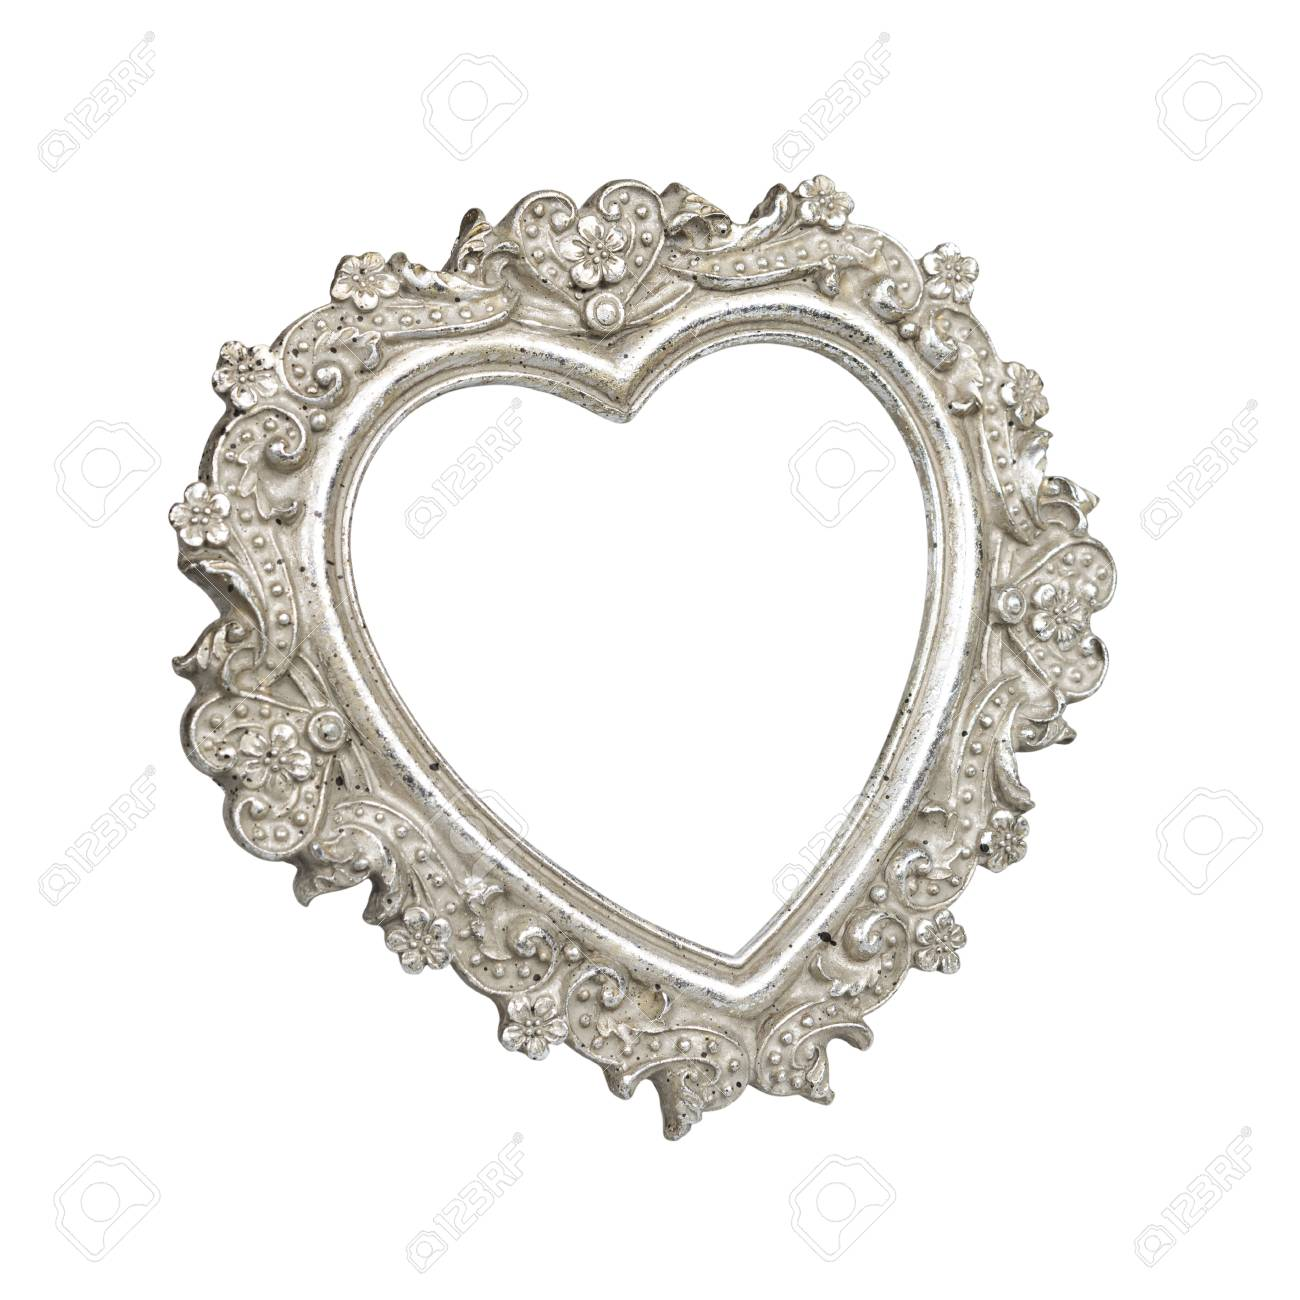 Old Silver Heart Picture Frame Isolated On White With Clipping ...